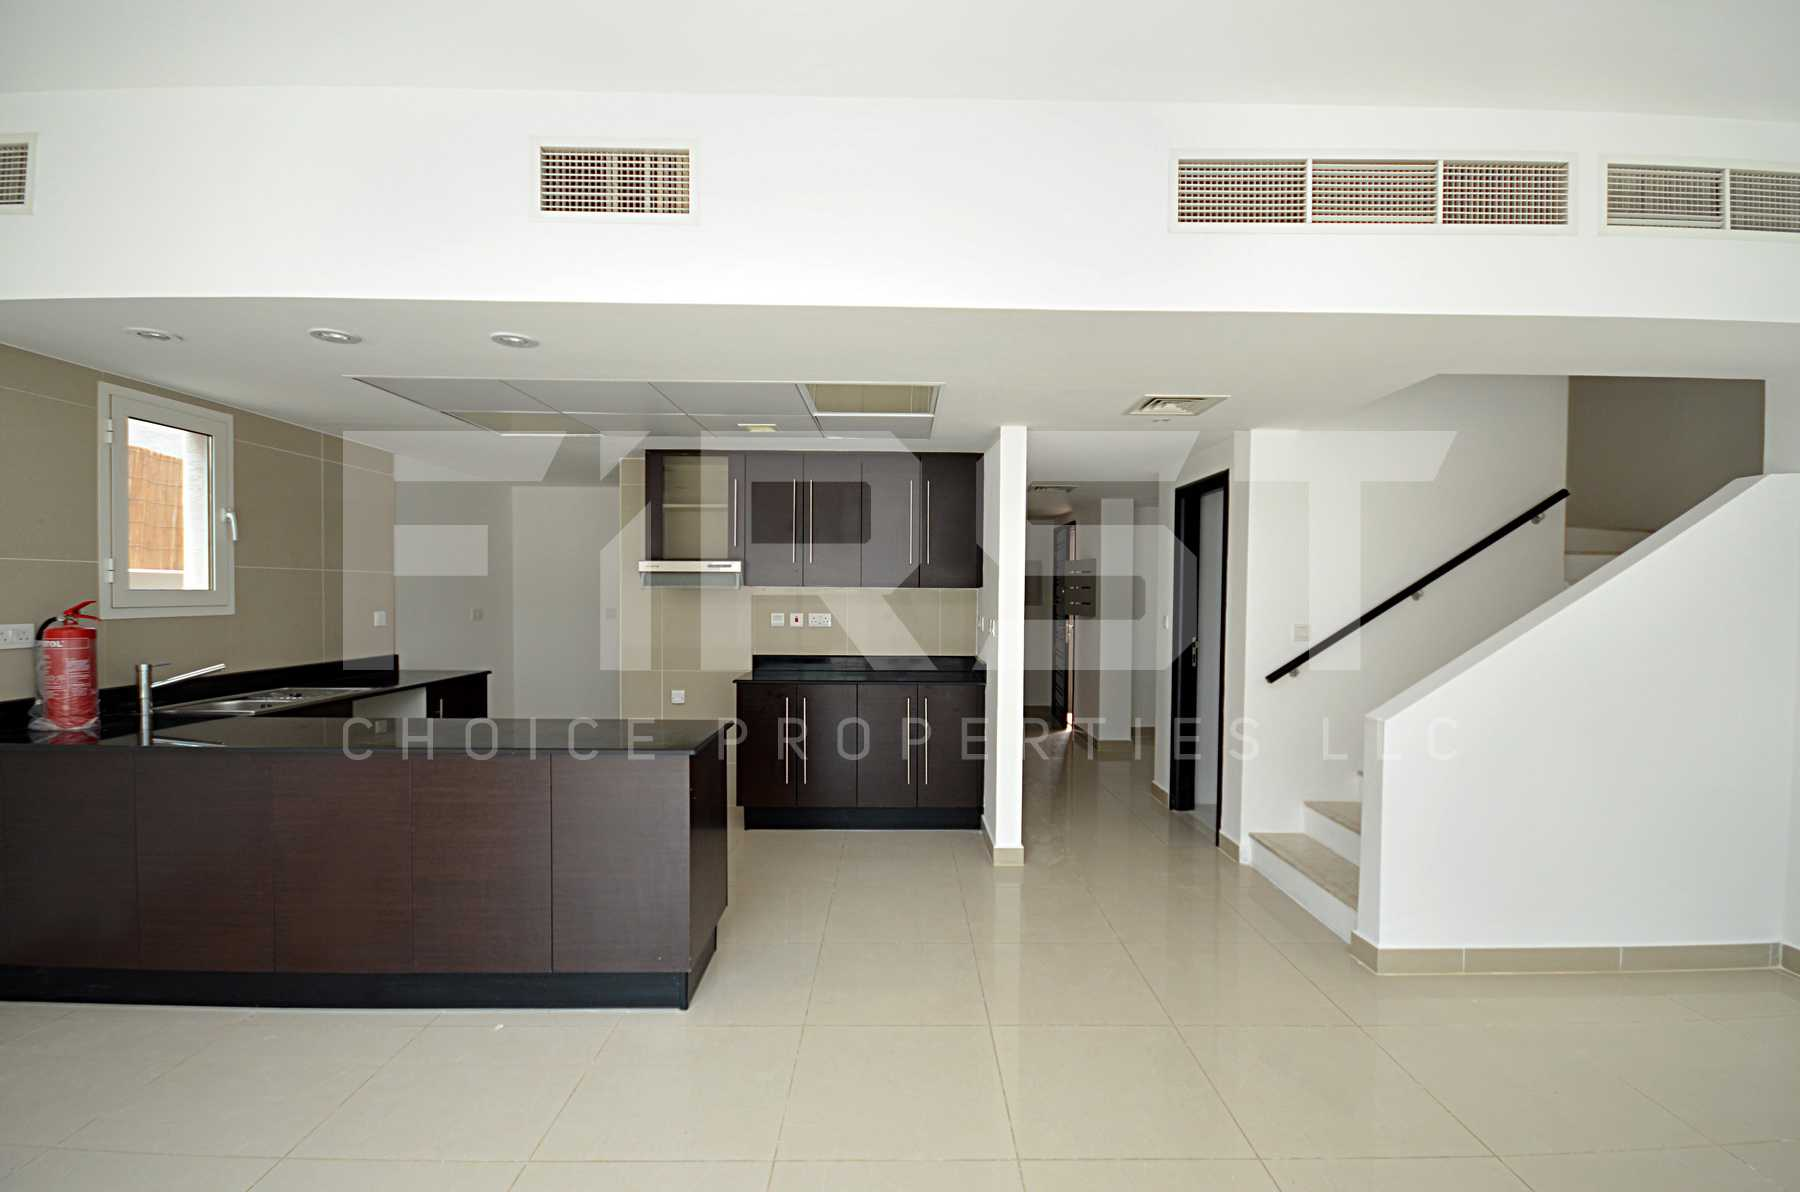 Internal Photo of 4 Bedroom Villa in Al Reef Villas Al Reef Abu Dhabi UAE 265.5 sq.m 2858 sq.ft (2).jpg